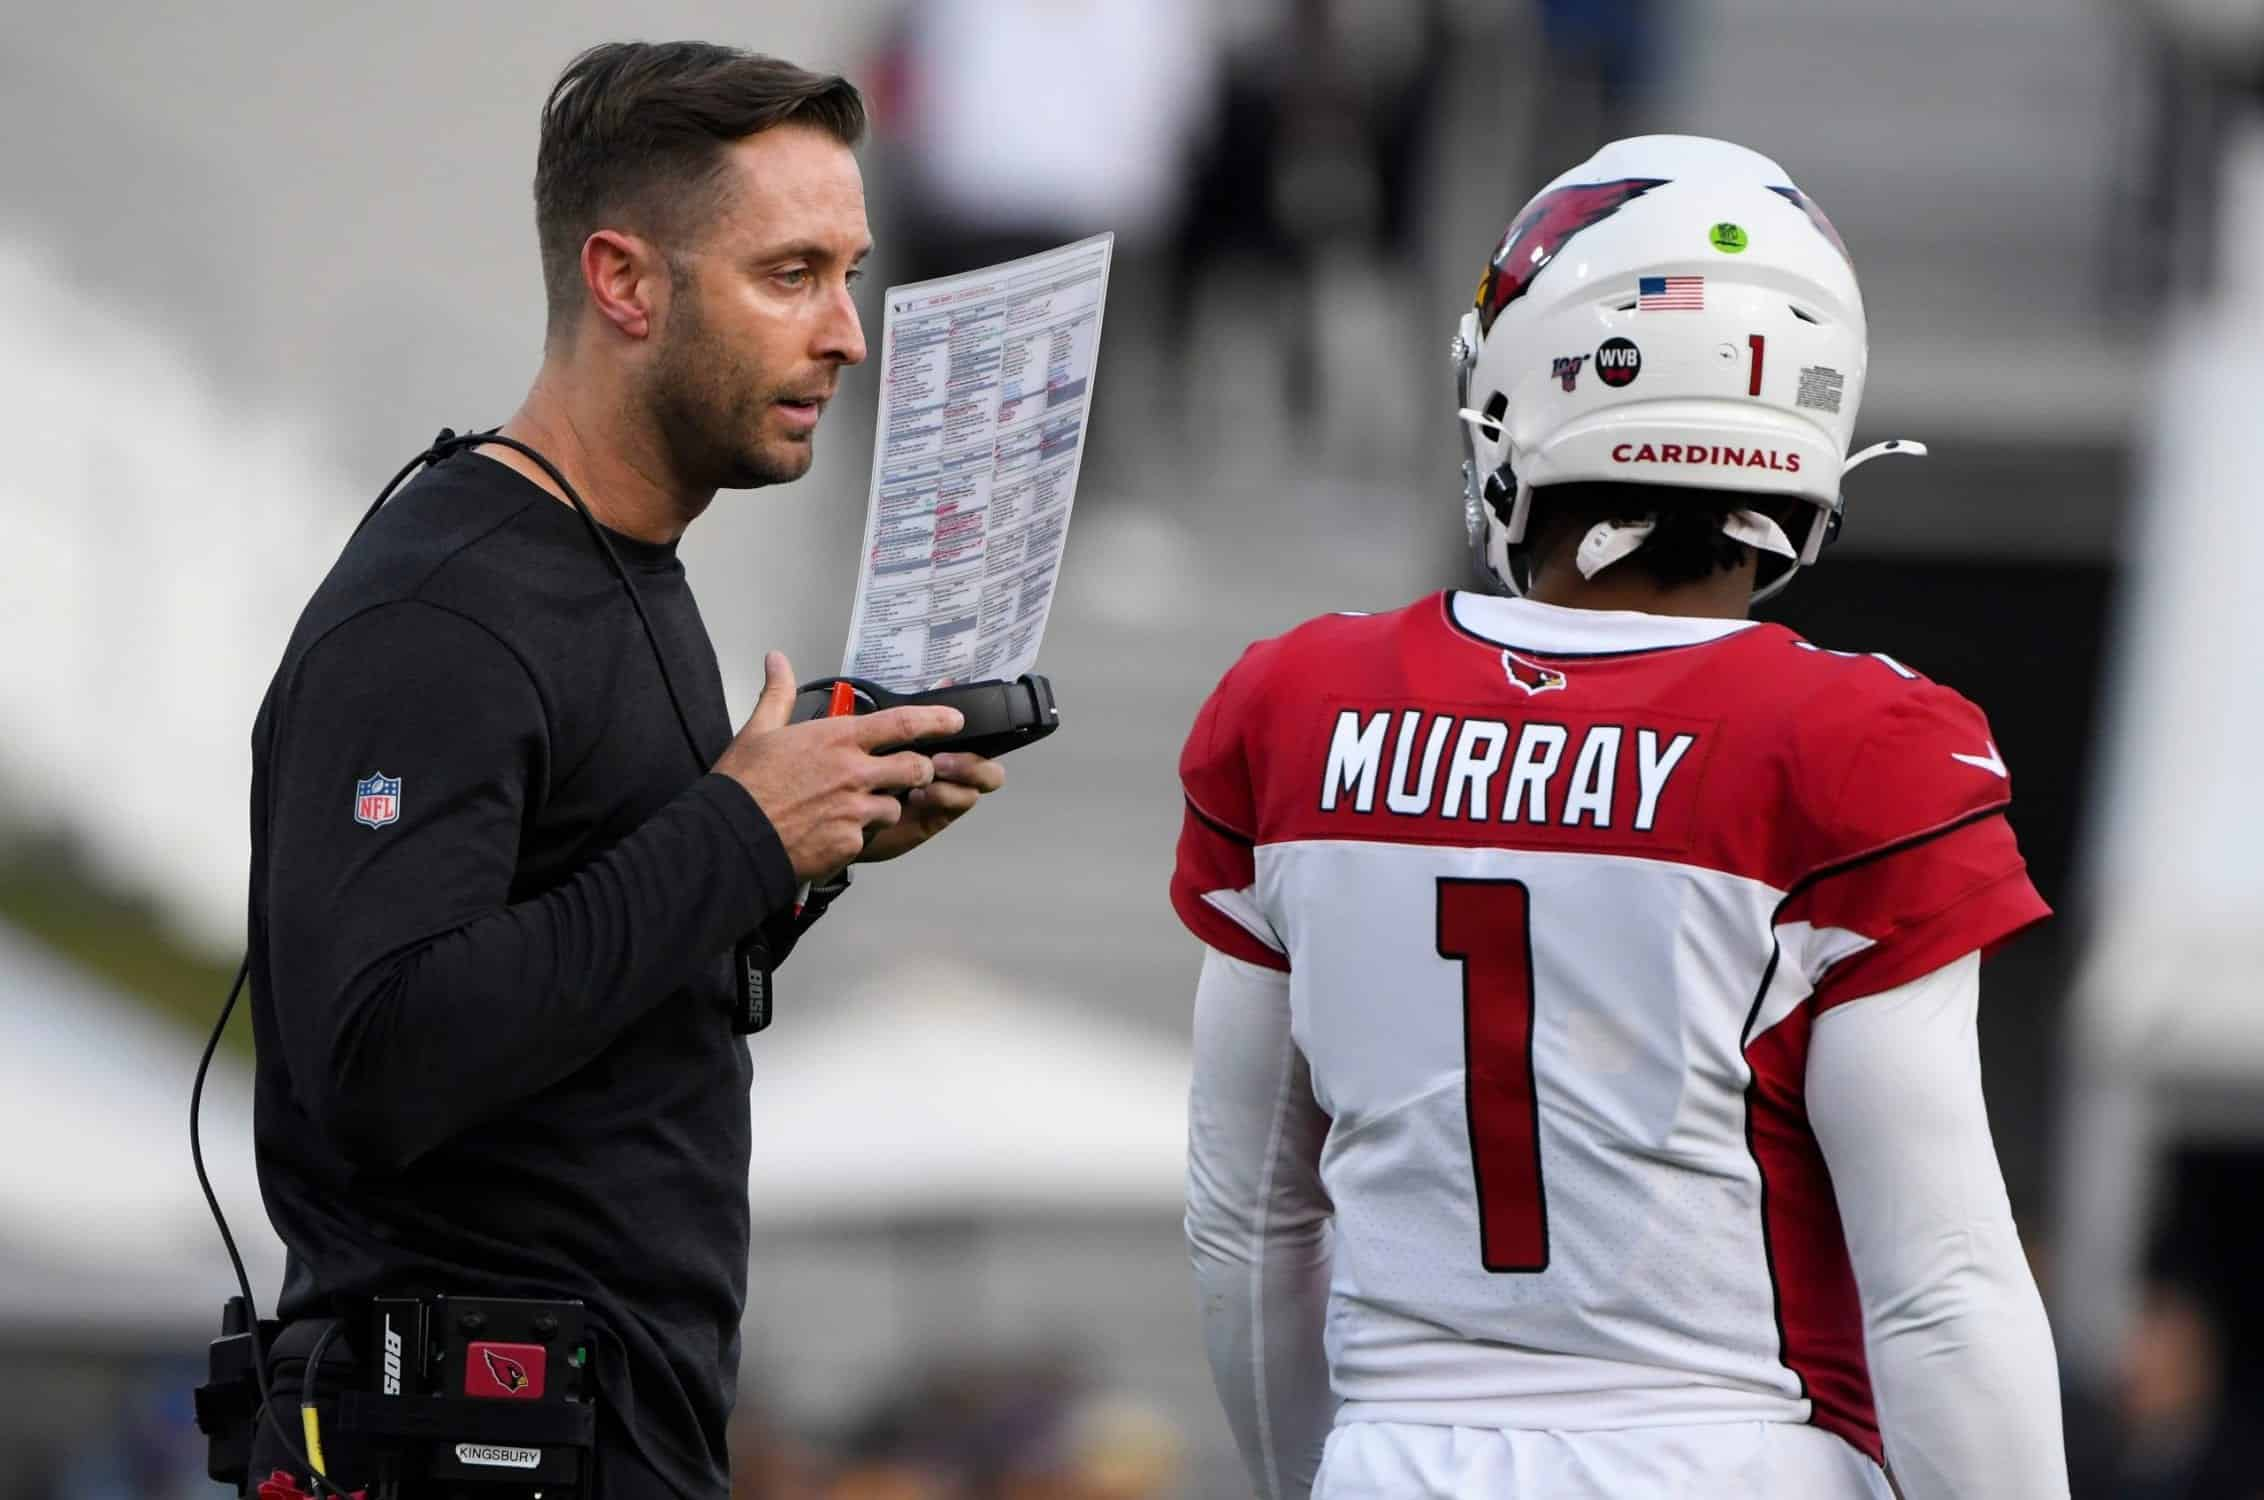 The impact of the 2019 NFC coaching hires on their team's draft classes